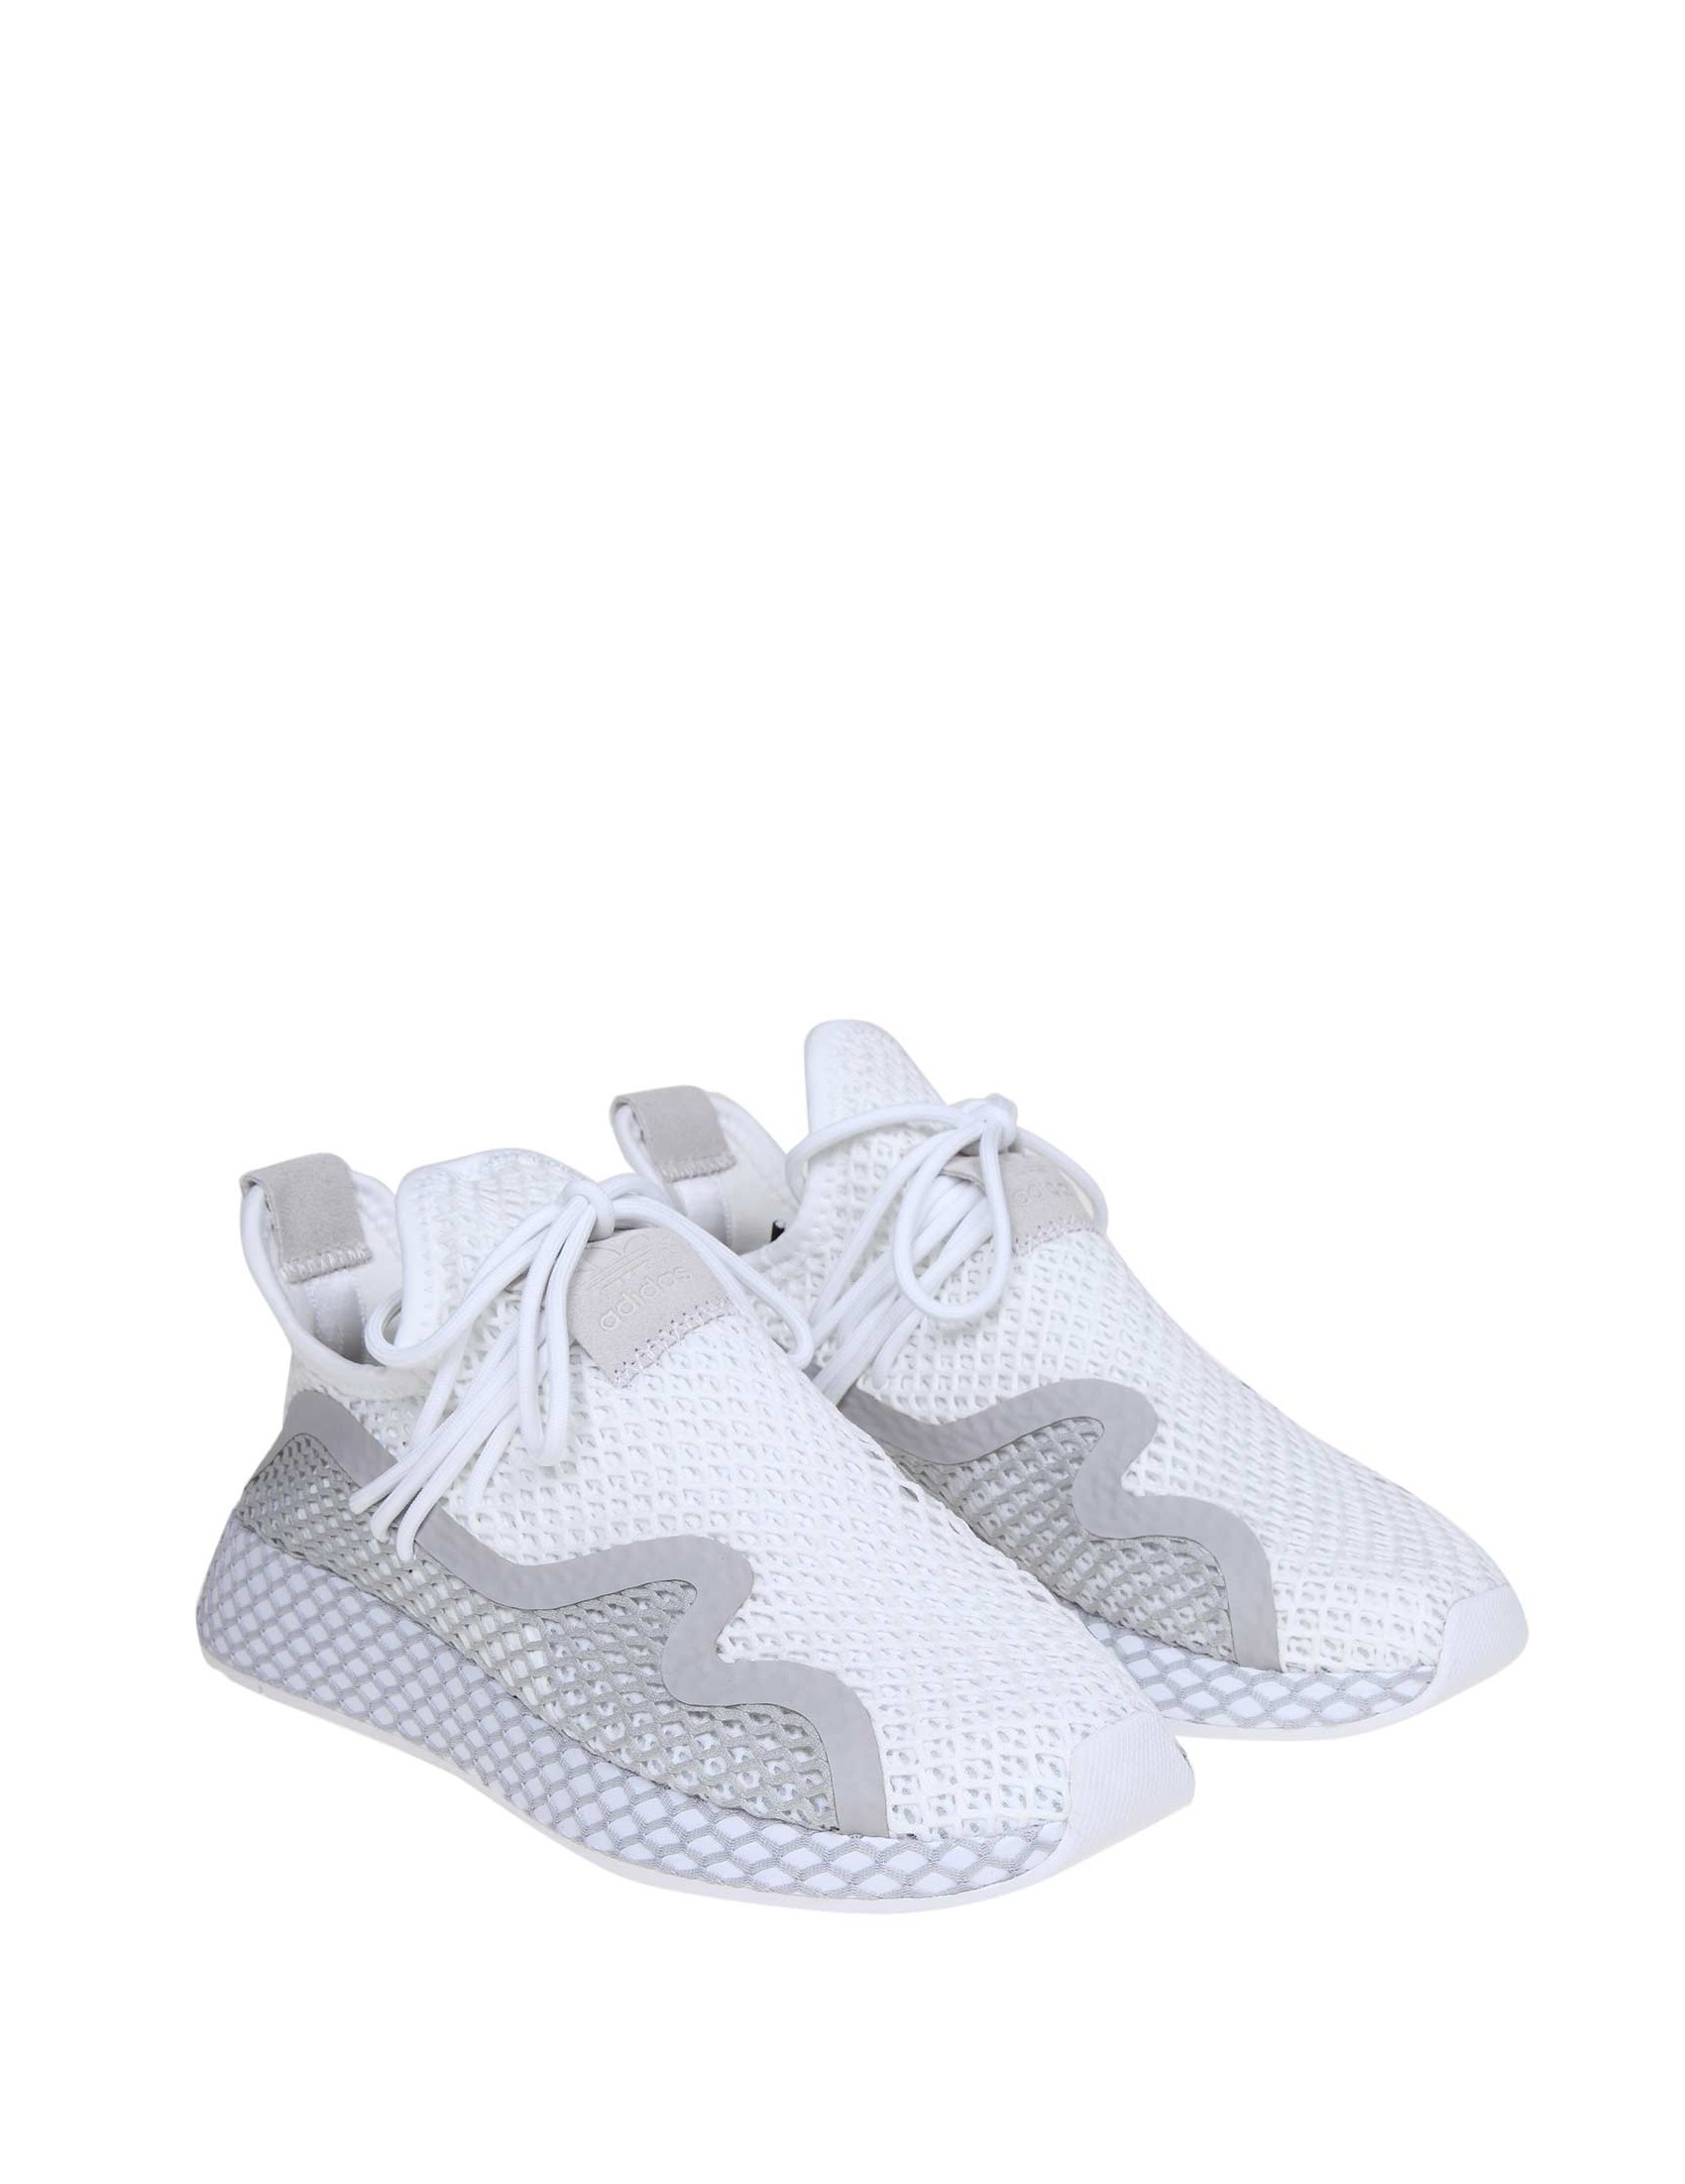 771b079f adidas sneakers deerupt s runner in white stretch fabric